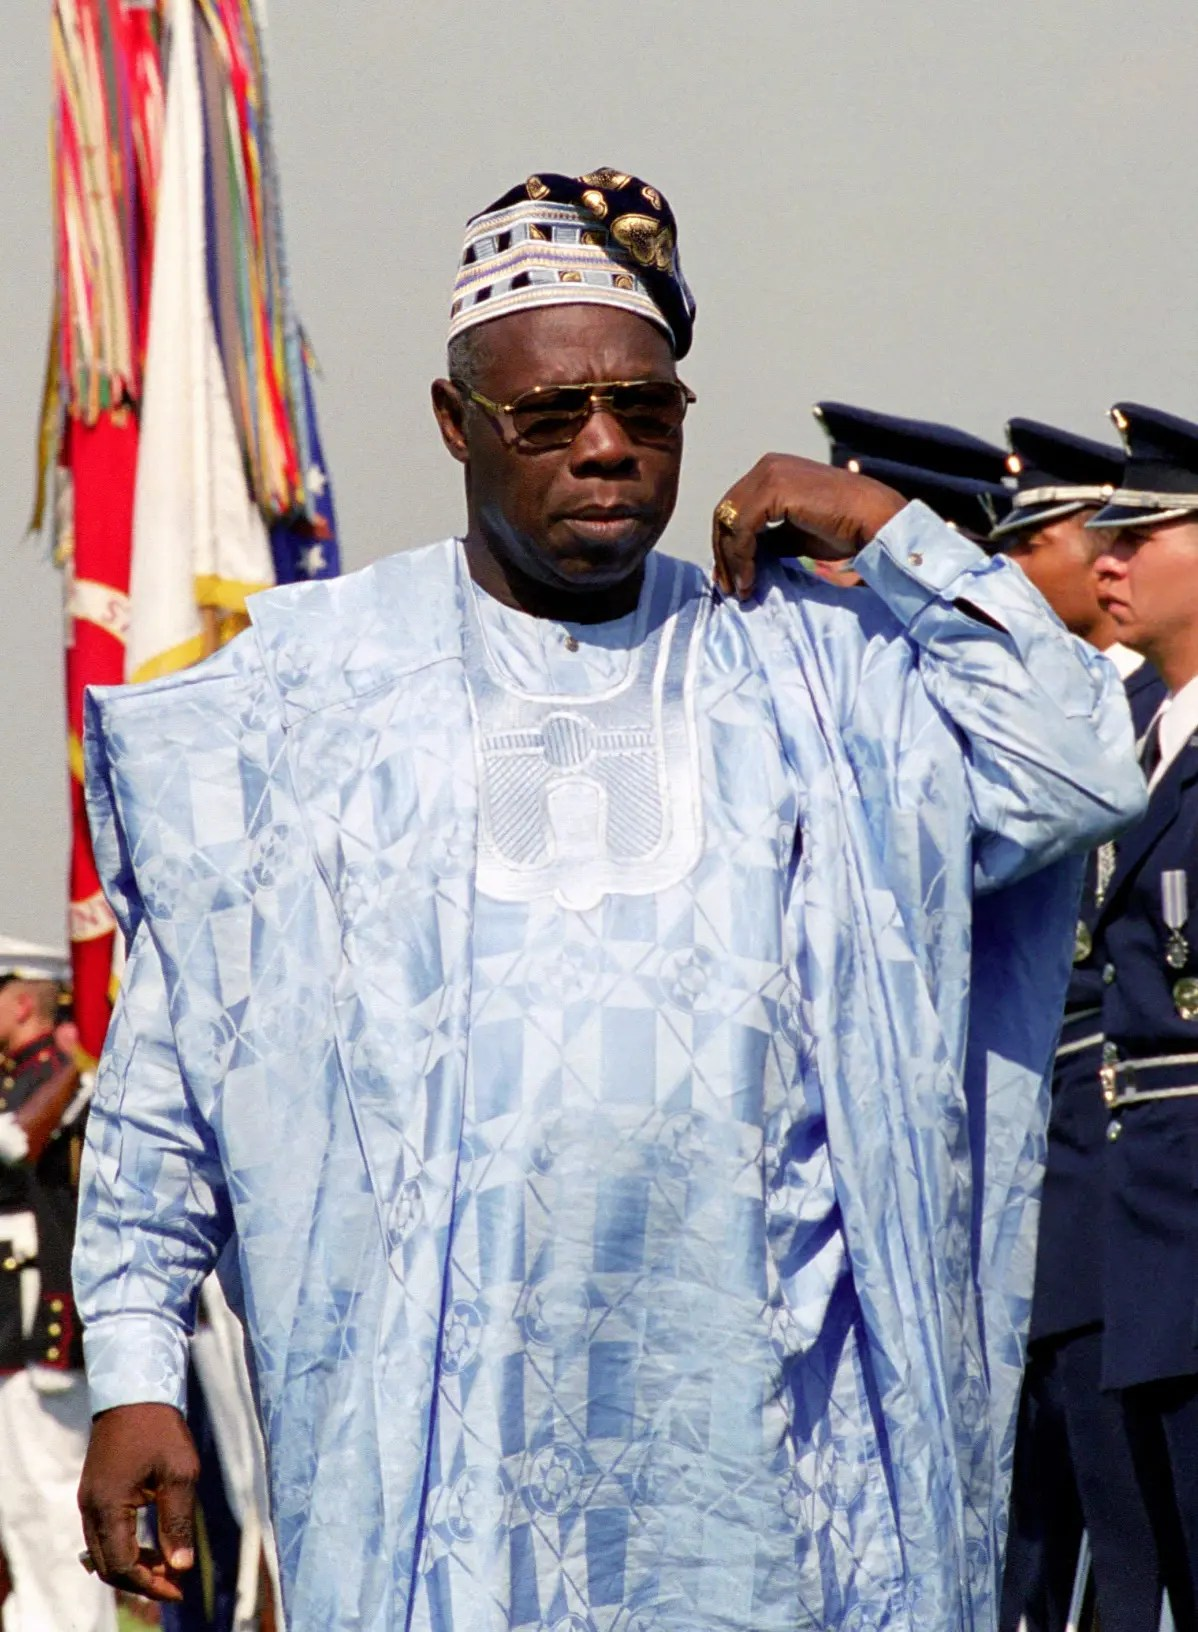 President Matthew Olusegun Aremu Obasanjo (center, right), Federal Republic of Nigeria, participates in a Full Honor Arrival Ceremony hosted by the Honorable Donald H. Rumsfeld (not pictured), U.S. Secretary of Defense, at the River Entrance of the Pentagon, Washington, D.C., May 10, 2001. OSD Package No. 010510-D-2987S-003-062 (Photo by Helene C. Stikkel) (Released)